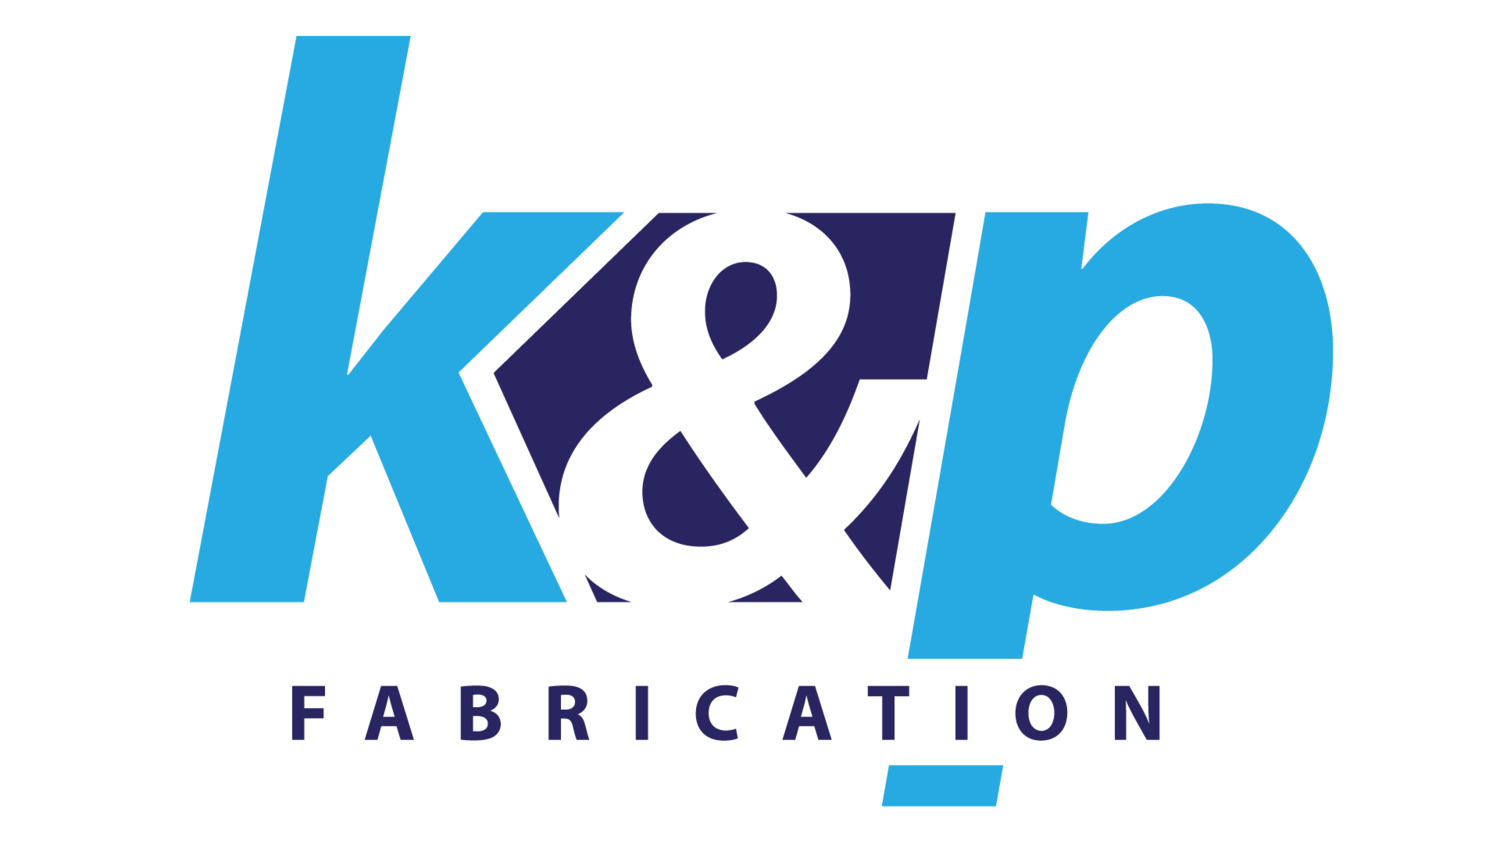 K&P Fabrication